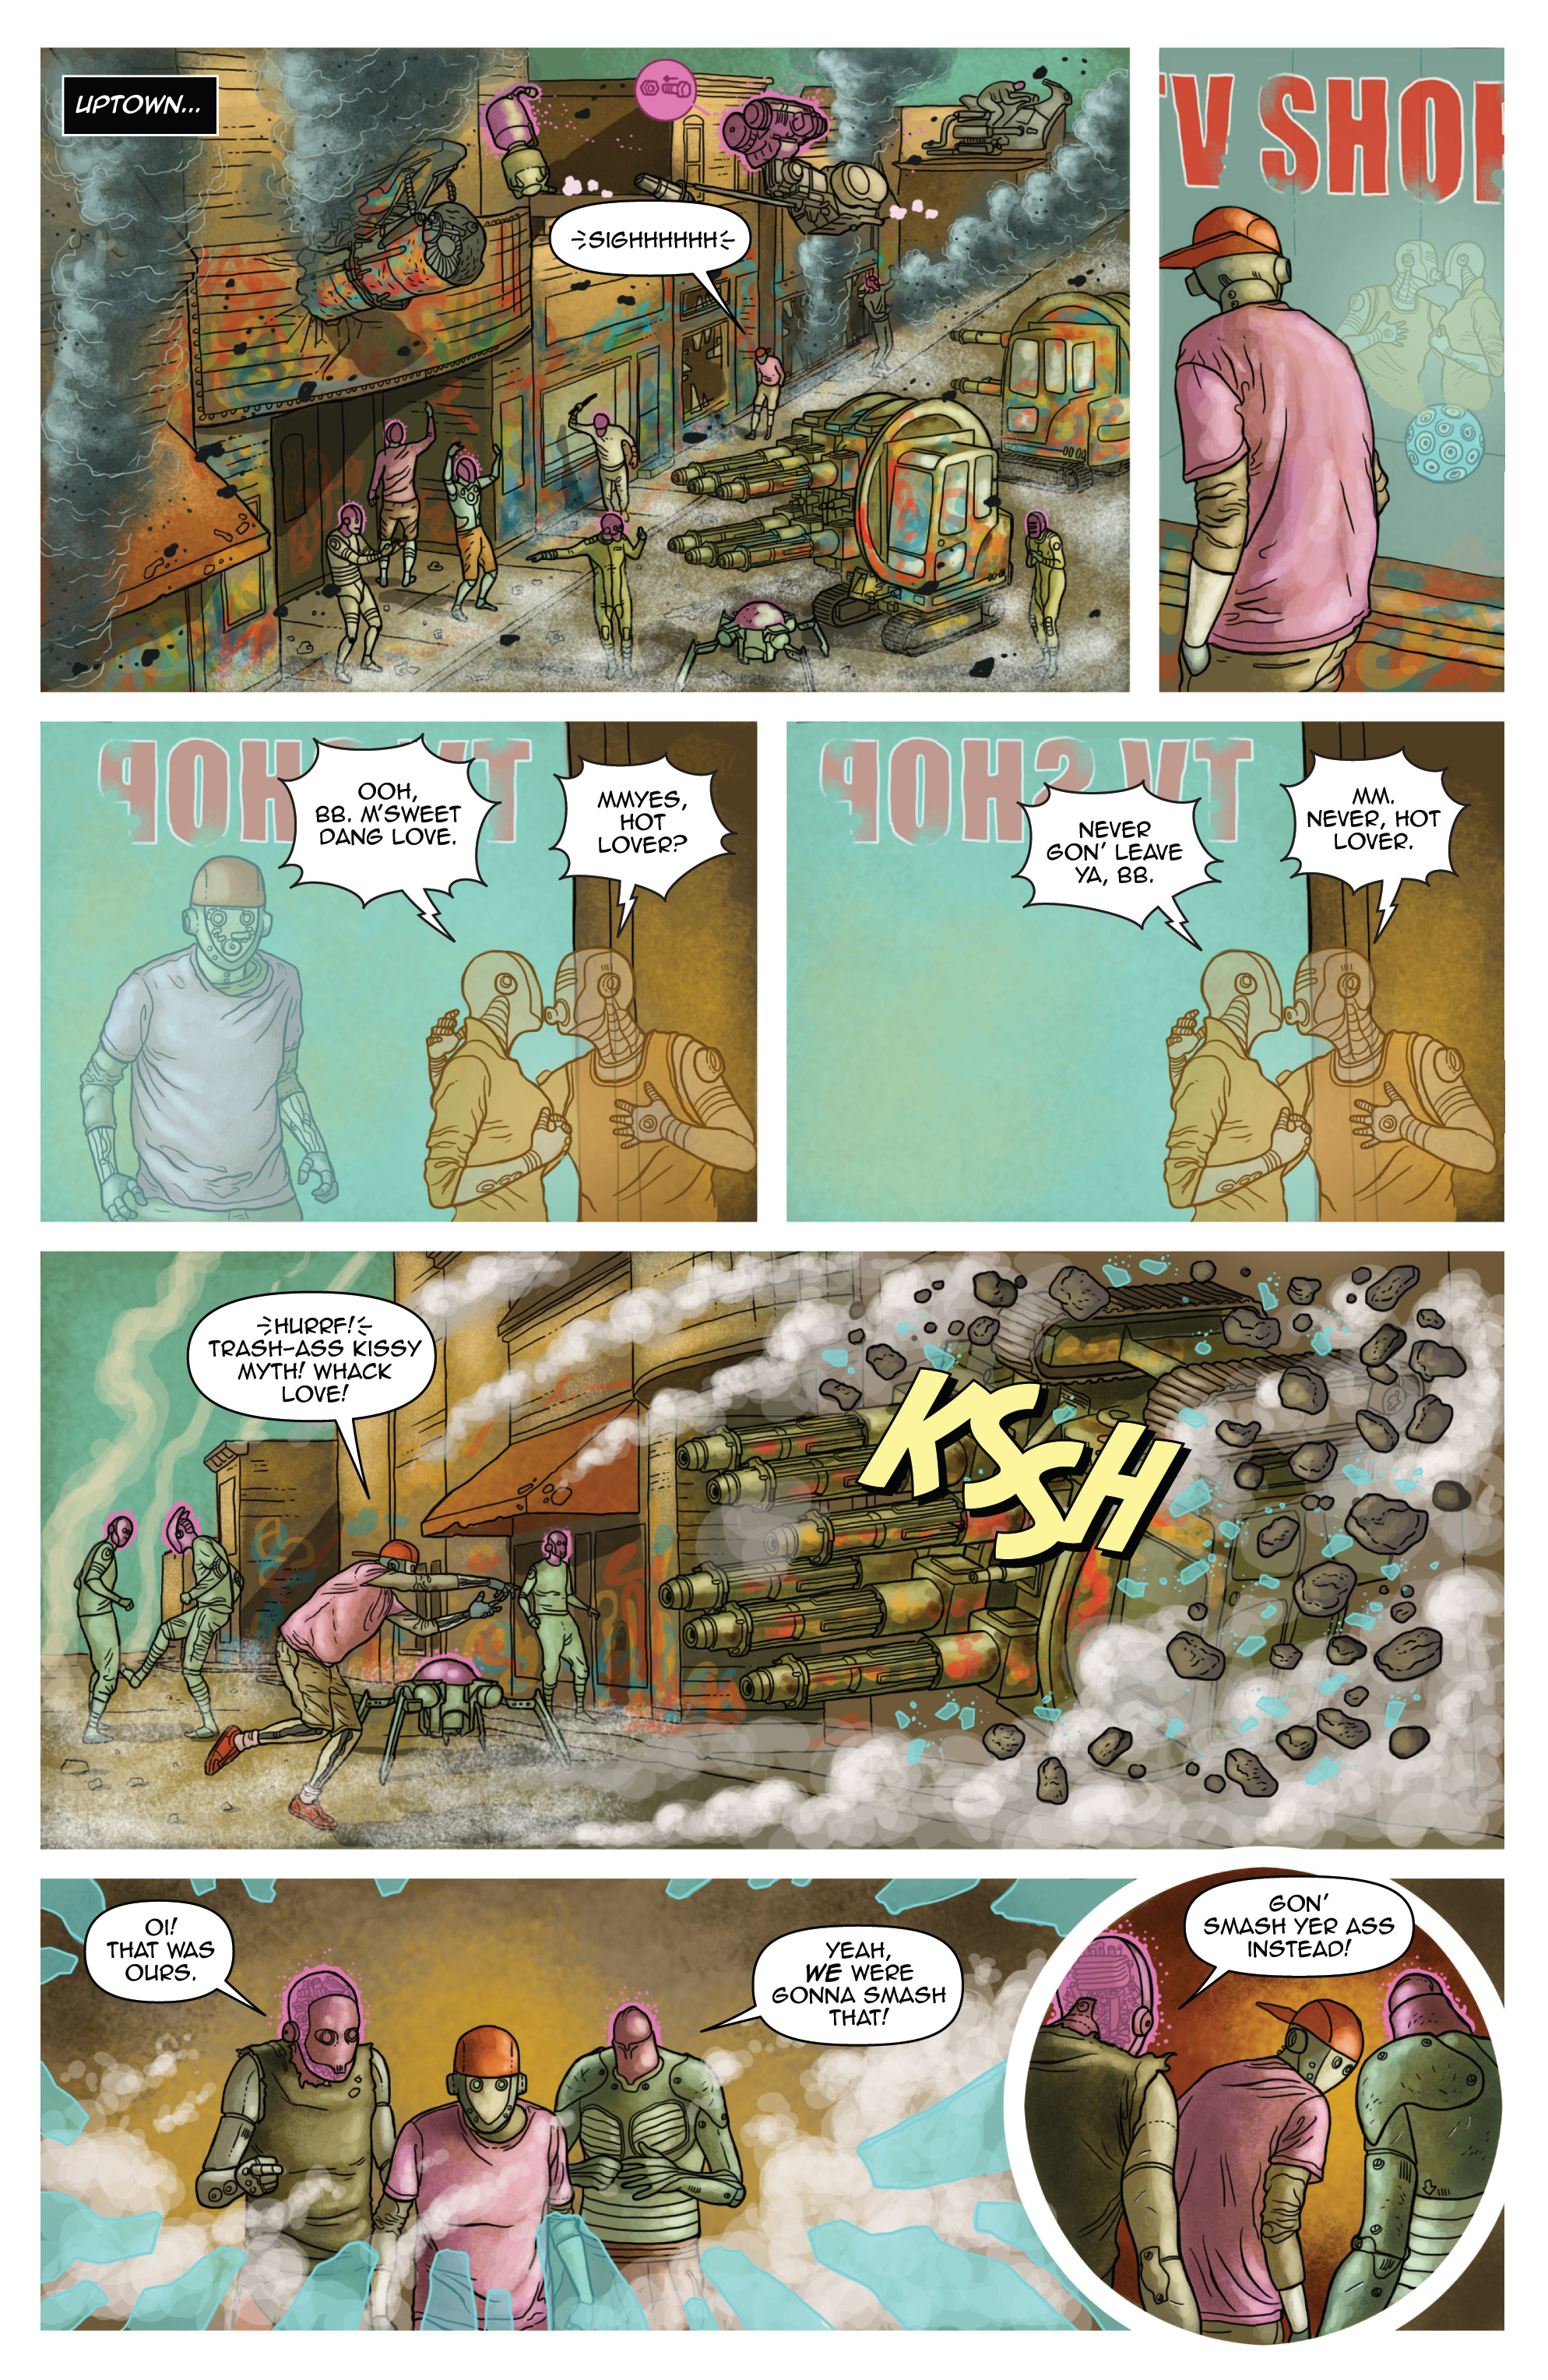 Read online D4VEocracy comic -  Issue #4 - 6